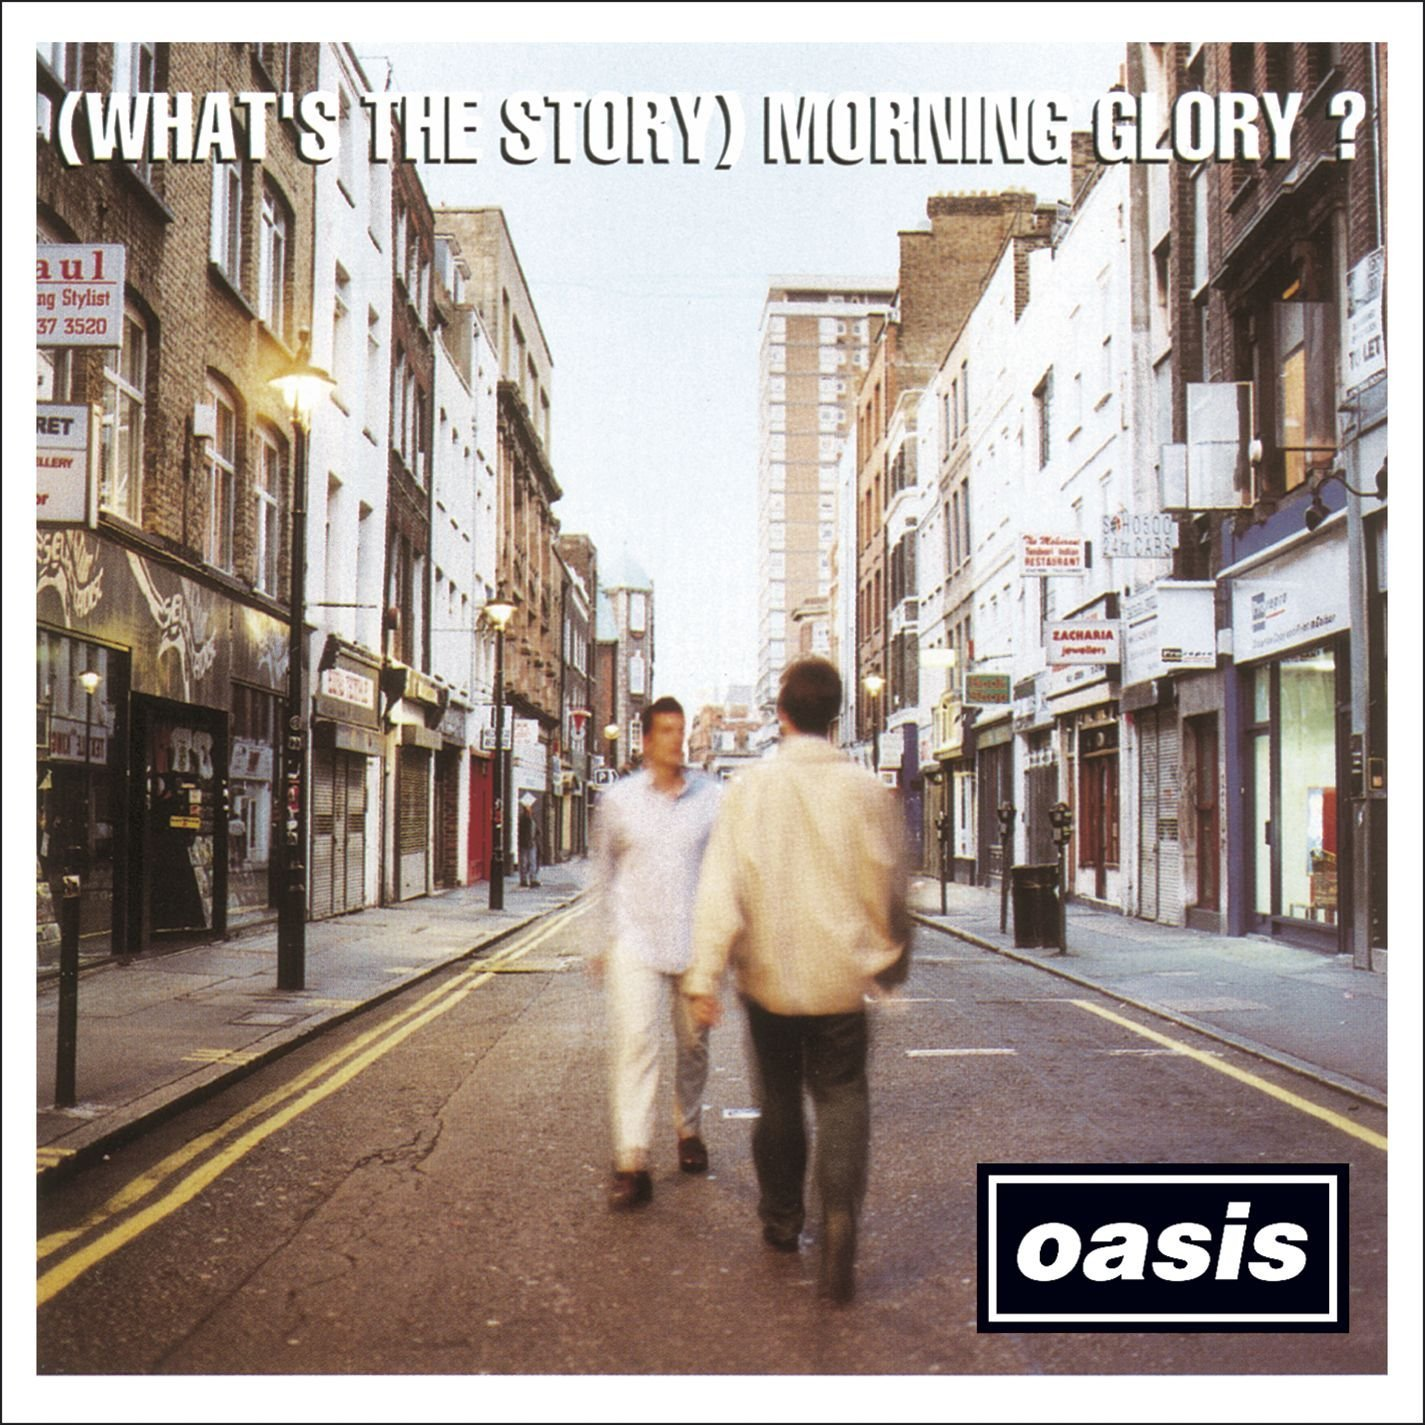 Oasis - morning glory front